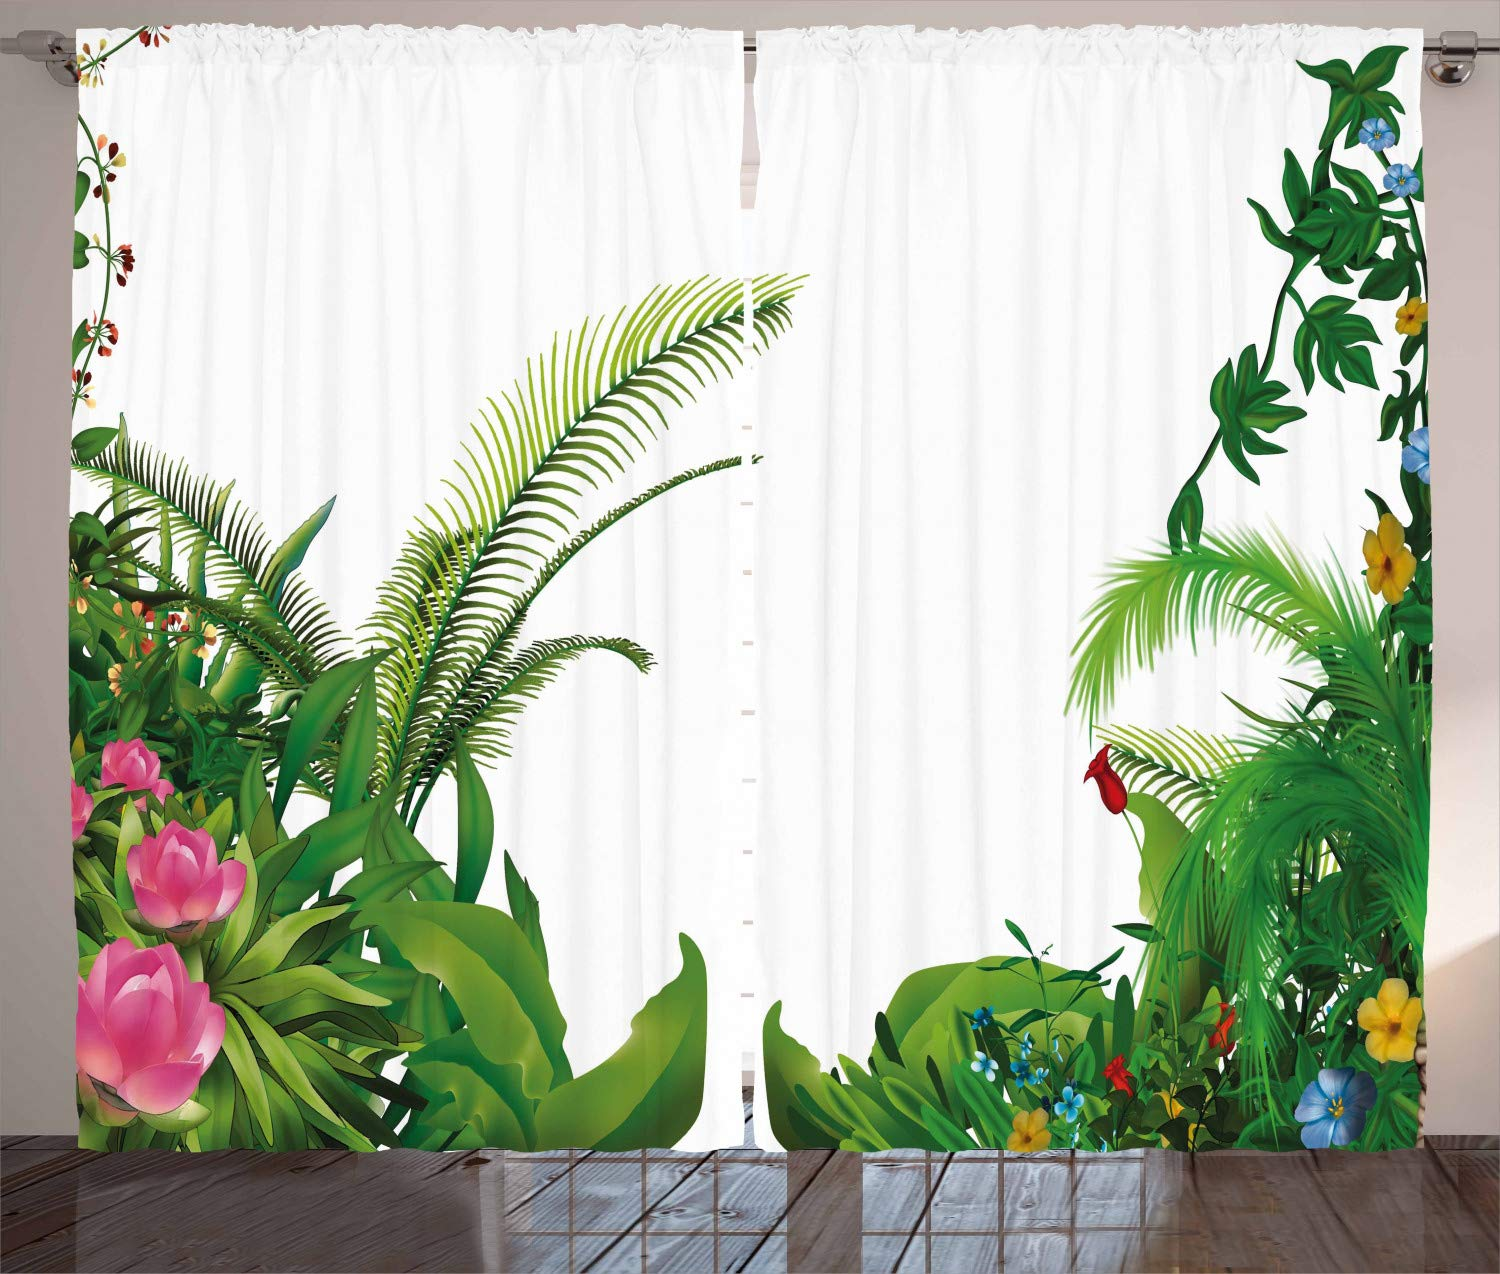 Green White Living Room Bedroom Window Drapes 2 Panel Set Exotic Beach Water and Palm Tree by The Shore with Clear Sky Landscape Image 108 W X 84 L Inches Ambesonne Ocean Curtains